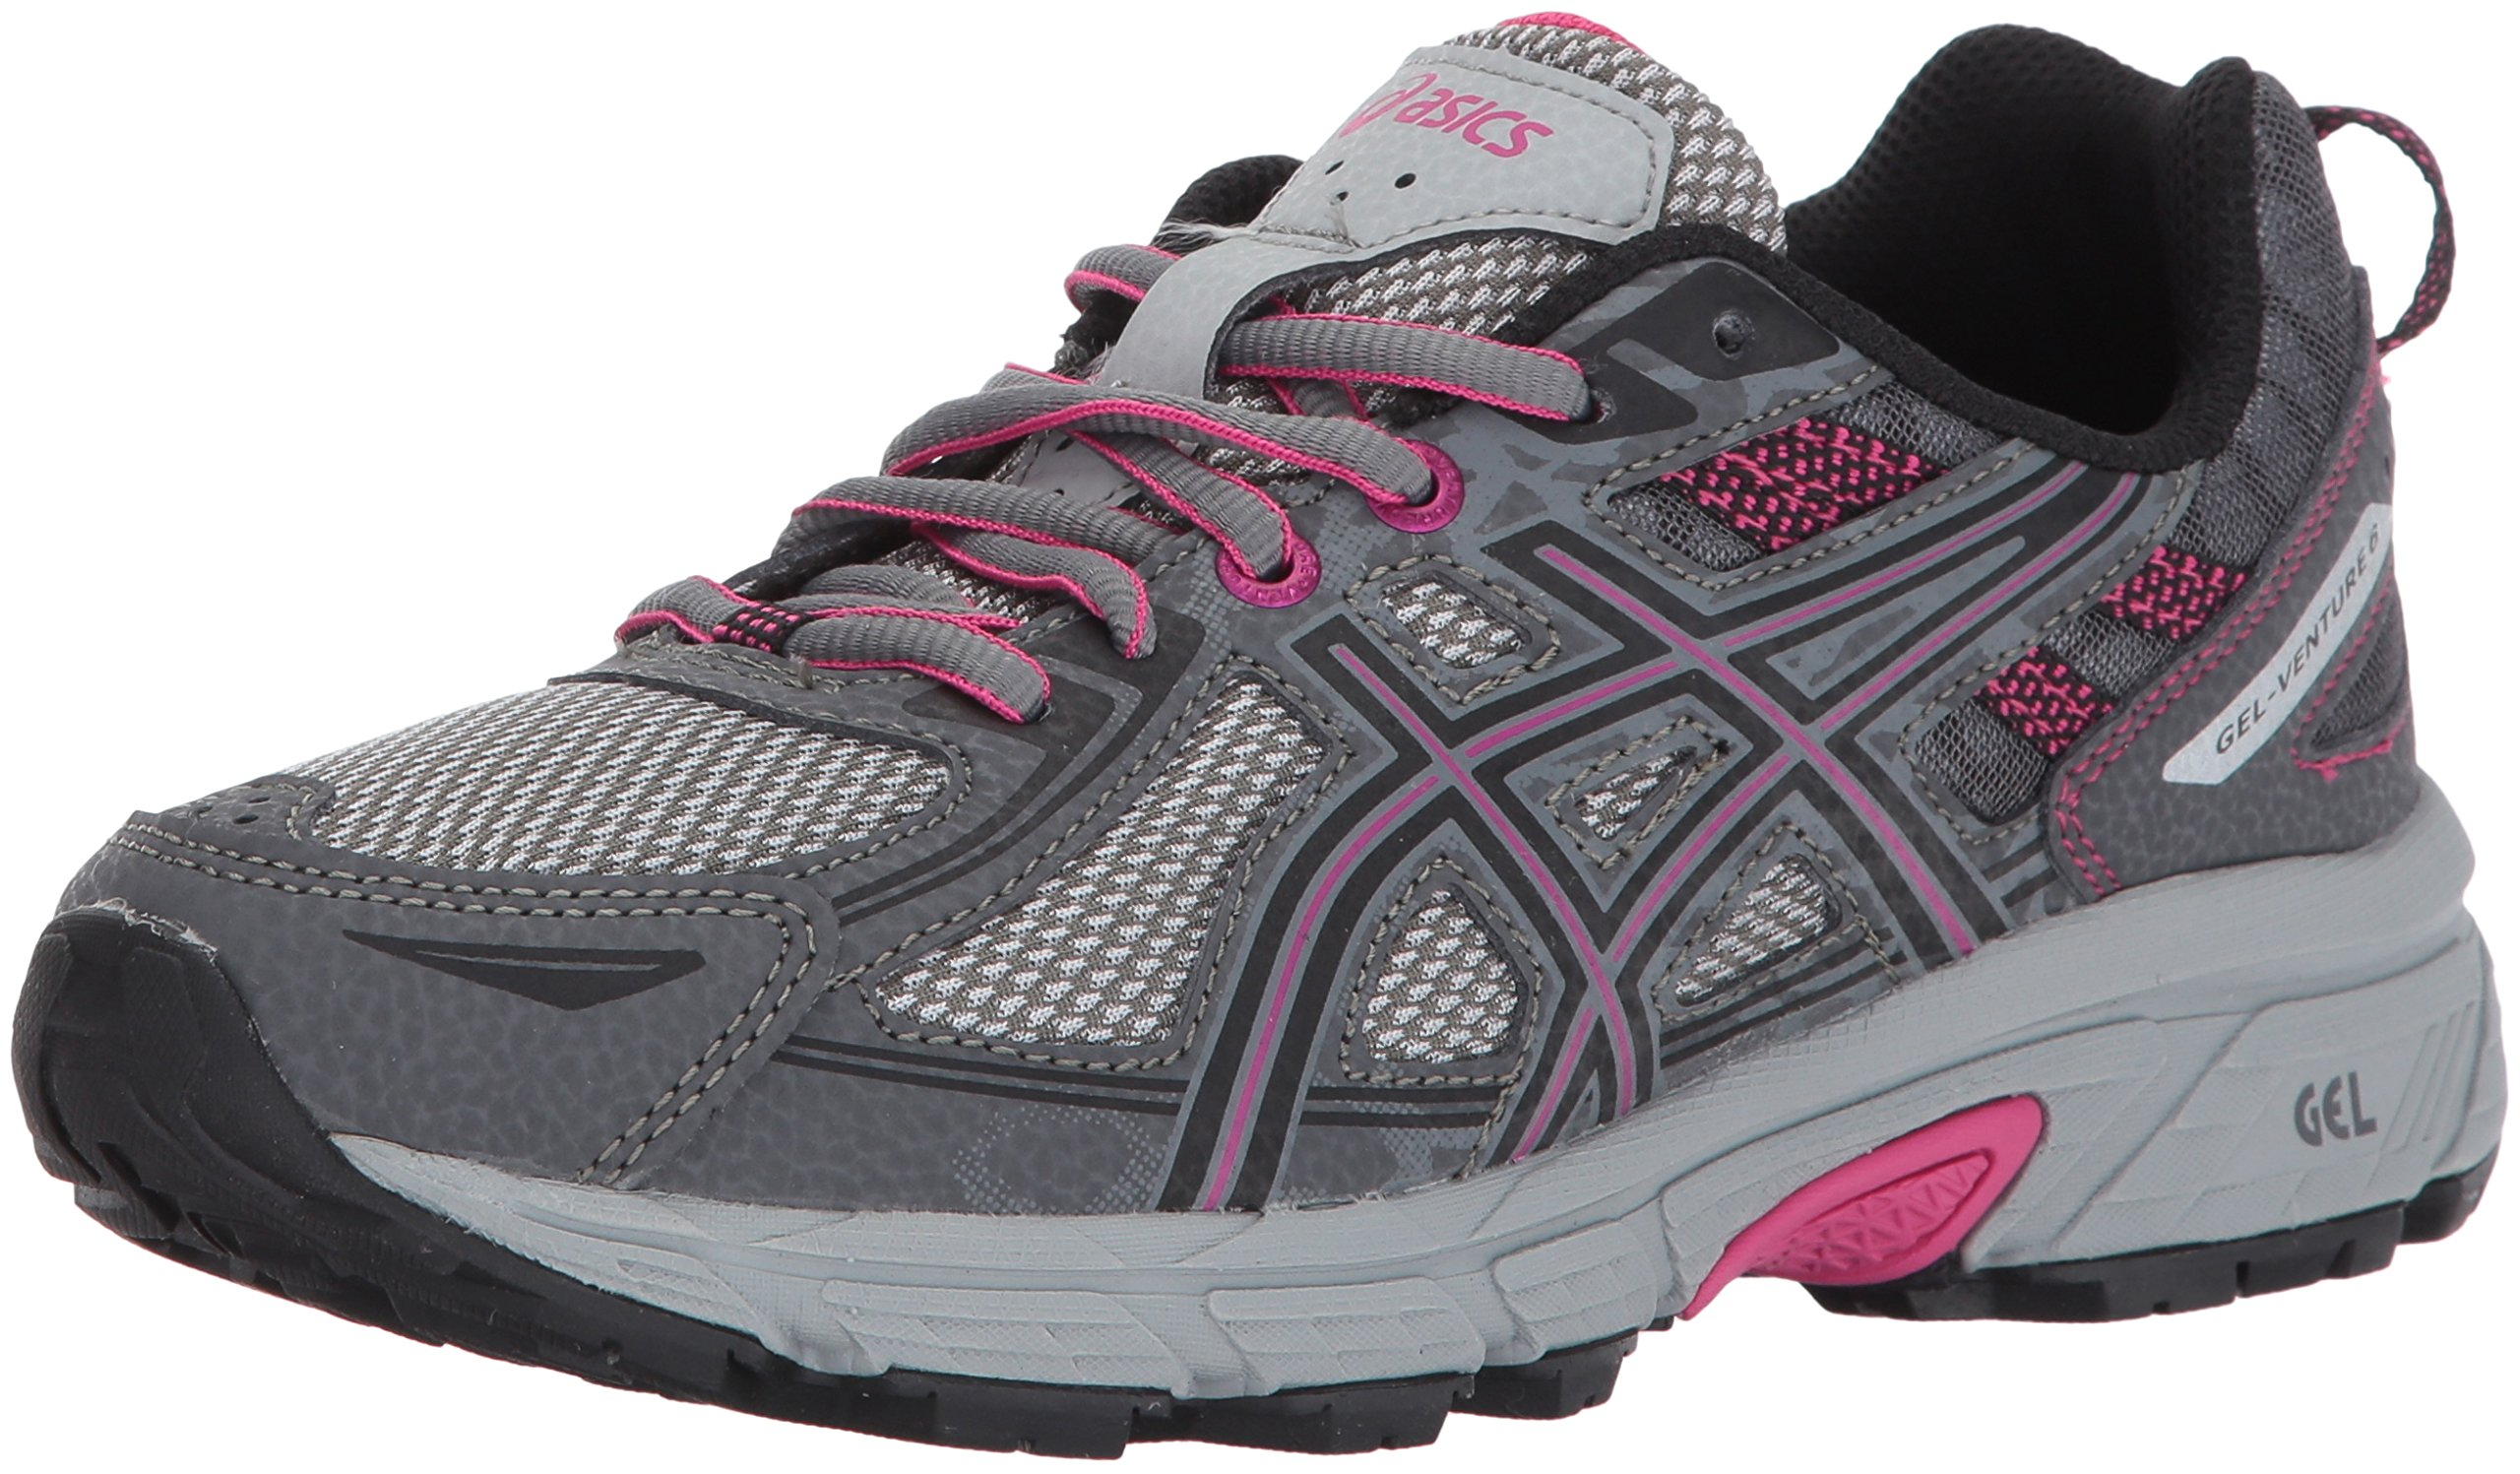 ASICS Women's Gel-Venture 6 Running-Shoes,Carbon/Black/Pink Peacock,10.5 Medium US by ASICS